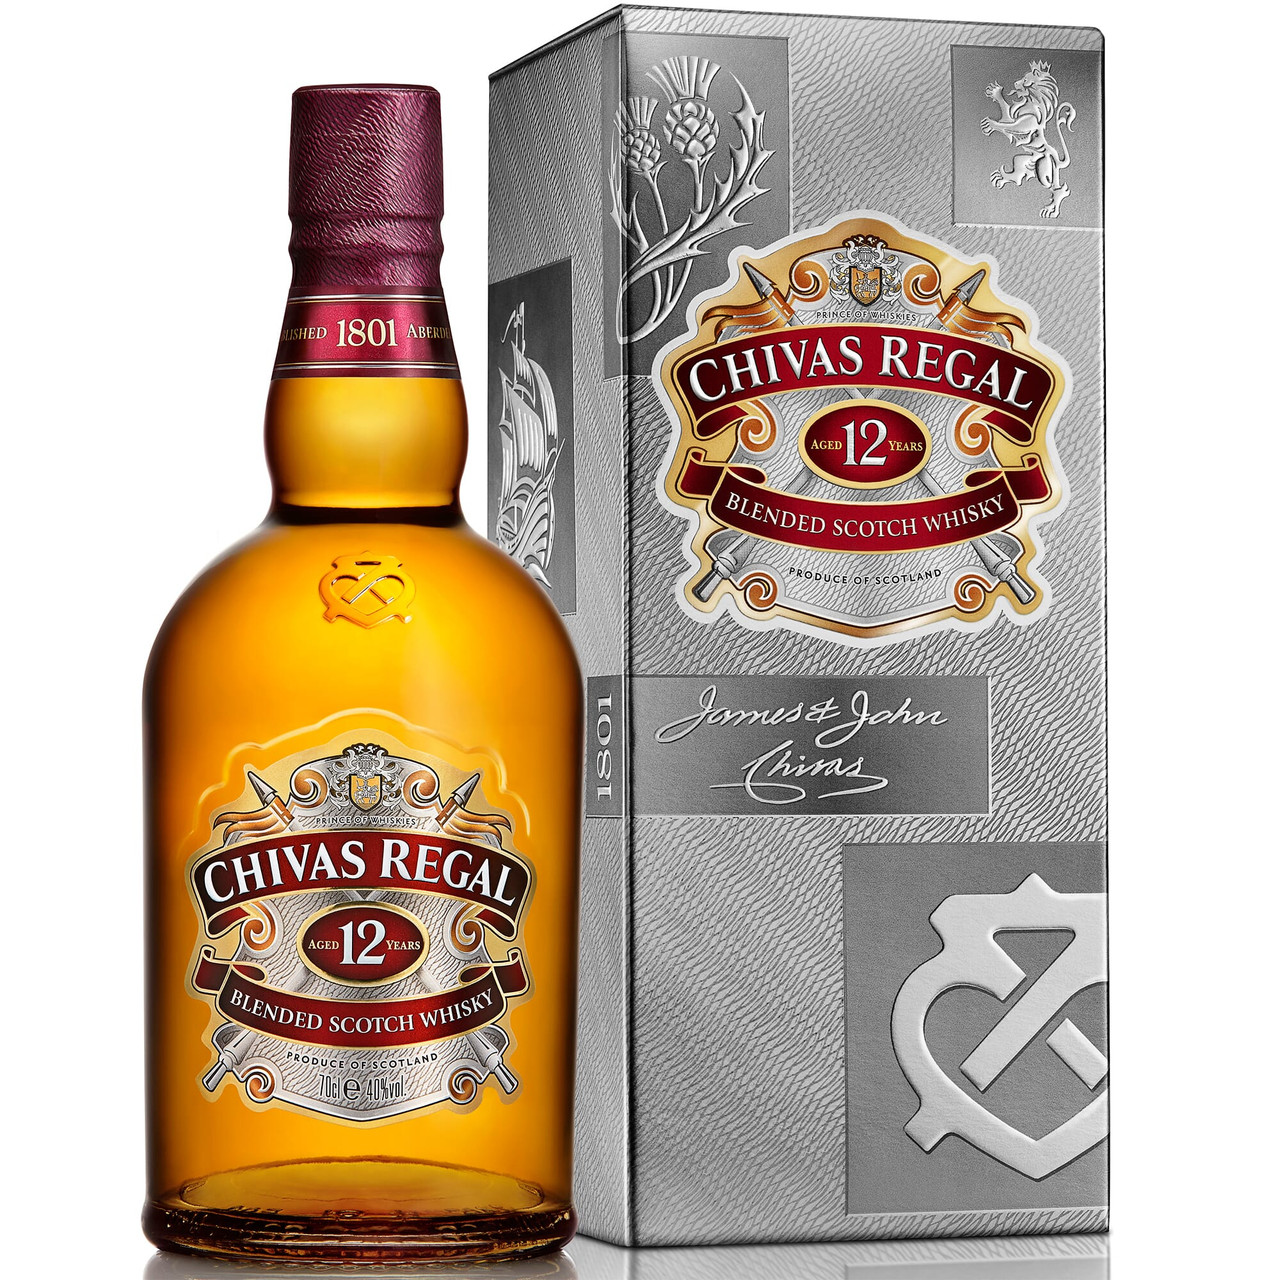 092287e7f1b Chivas Regal 12 Years Old Scotch Whisky 40% - 6x70cl. Image 1. Loading zoom